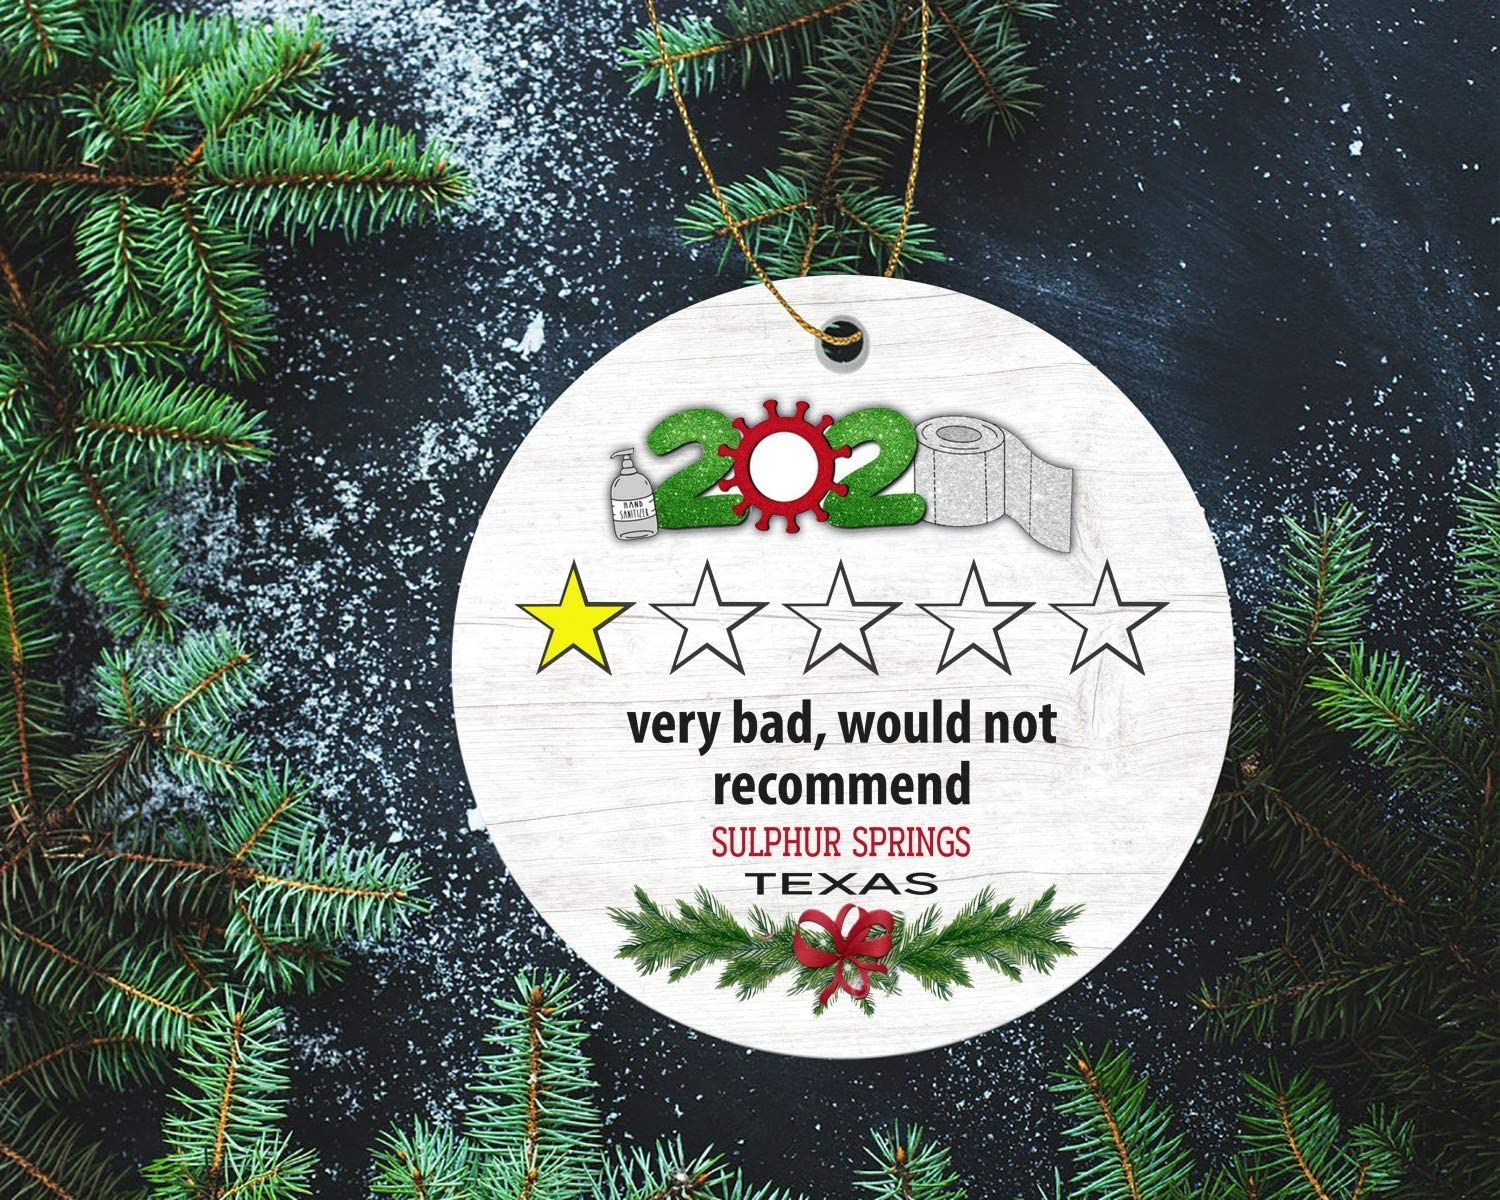 """Christmas Ornament Tree Trending 2020 Very Bad Would Not Recommend 1 Star Review Sulphur Springs Texas State Funny Quarantine Holiday XMAS Tree Decoration Social Distancing 3"""""""